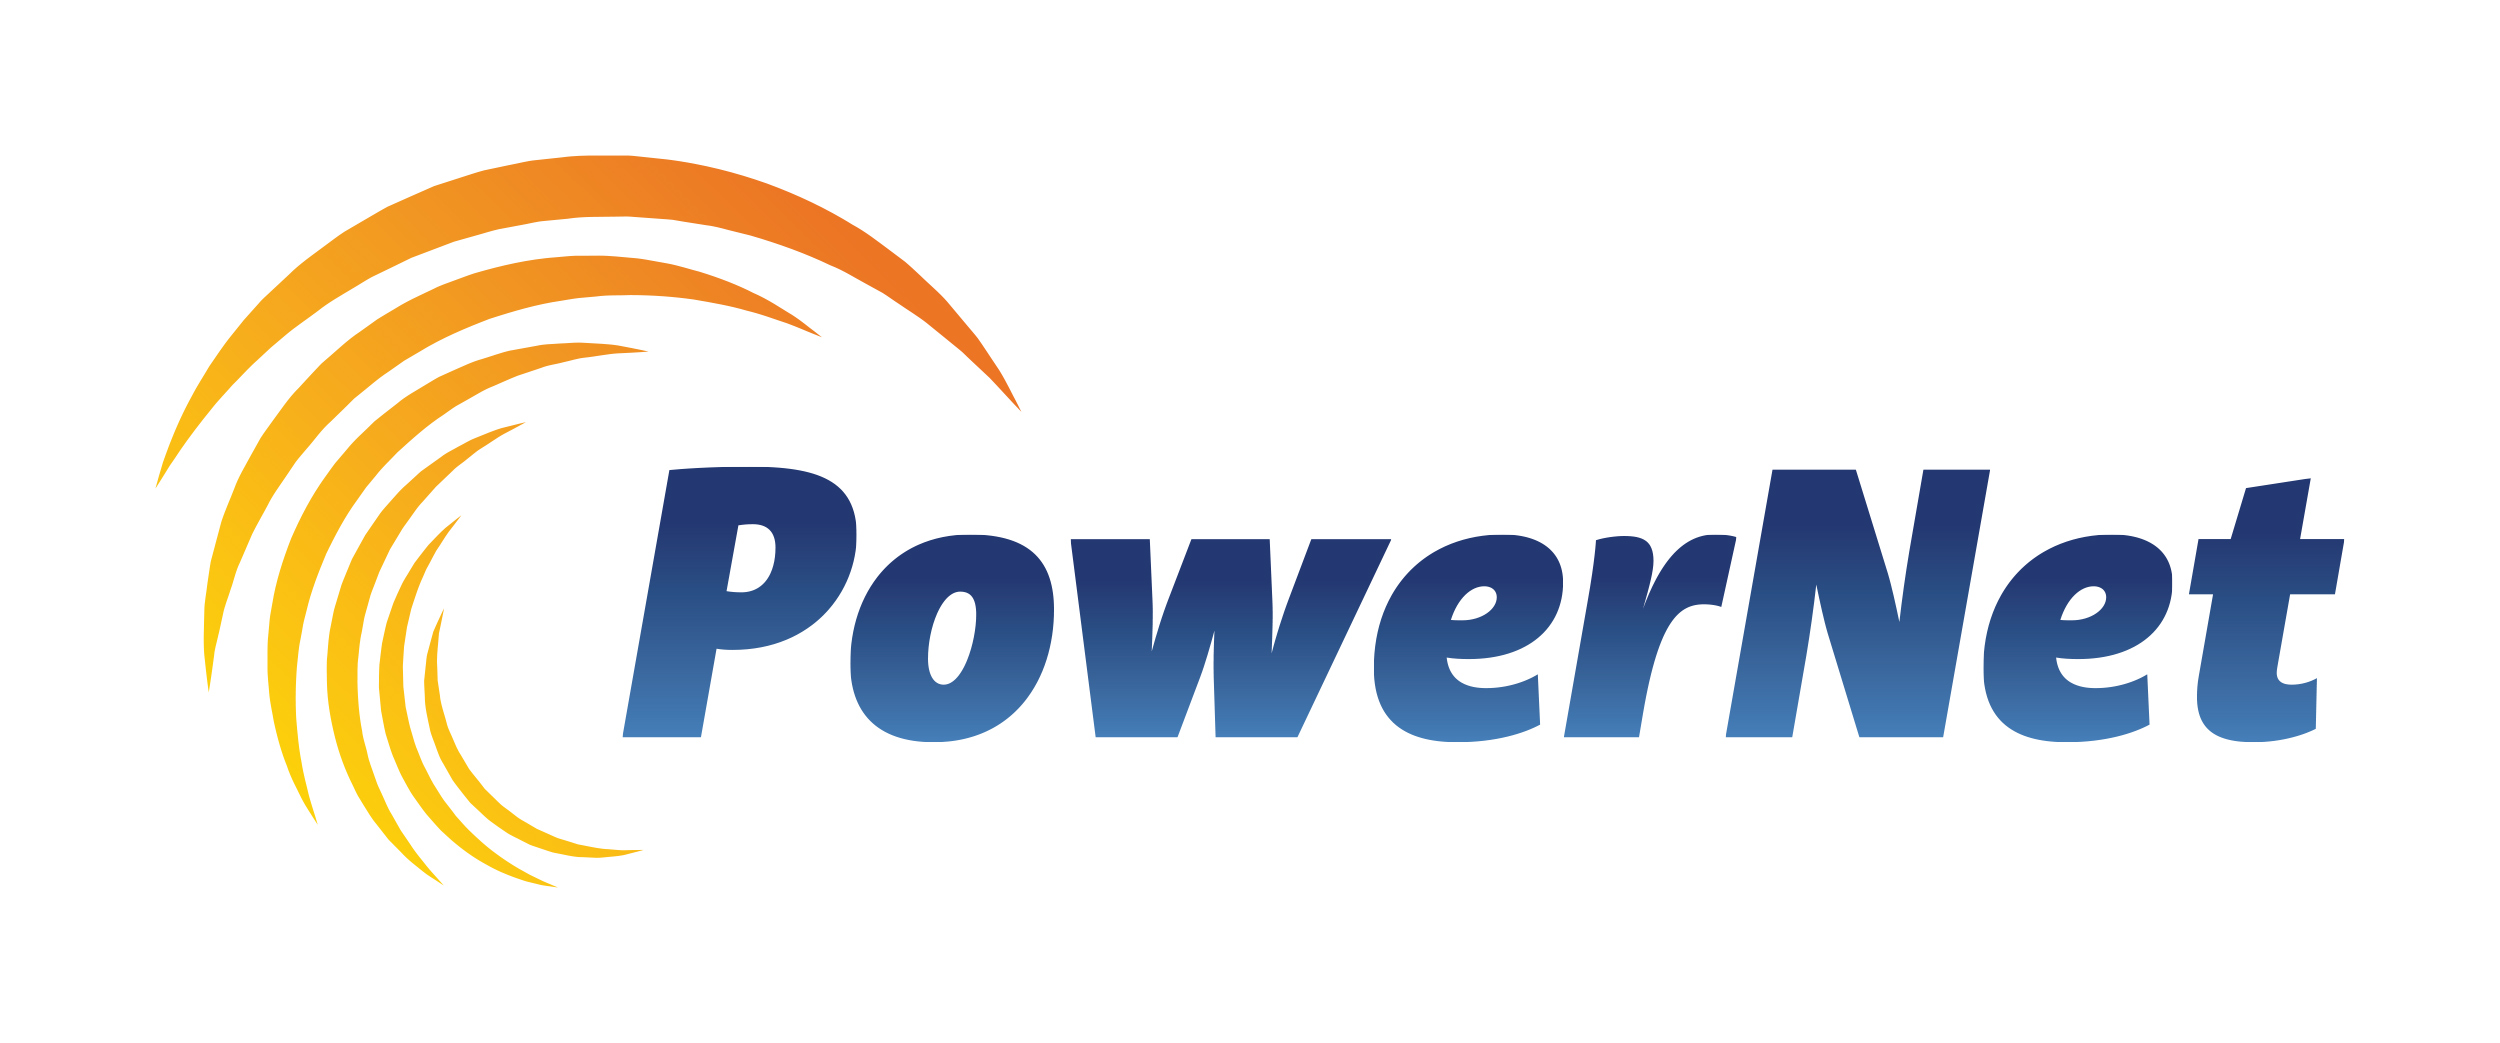 PowerNet New and Emerging Award Award